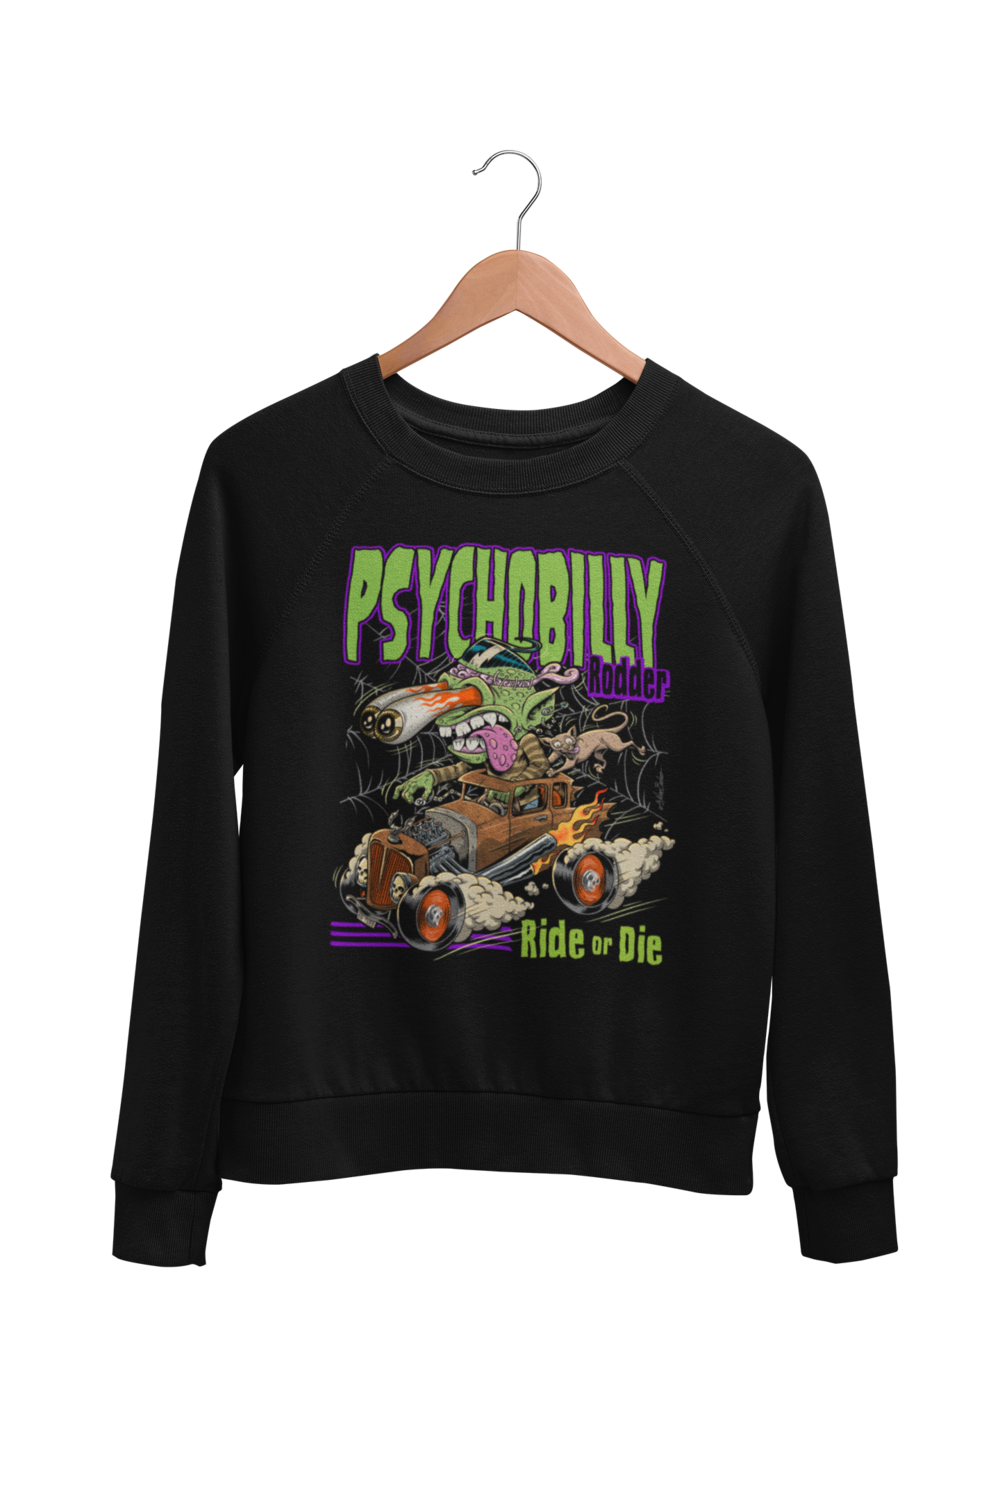 PSYCHOBILLY RODDER SWEATSHIRT UNISEX BY NANO BARBERO